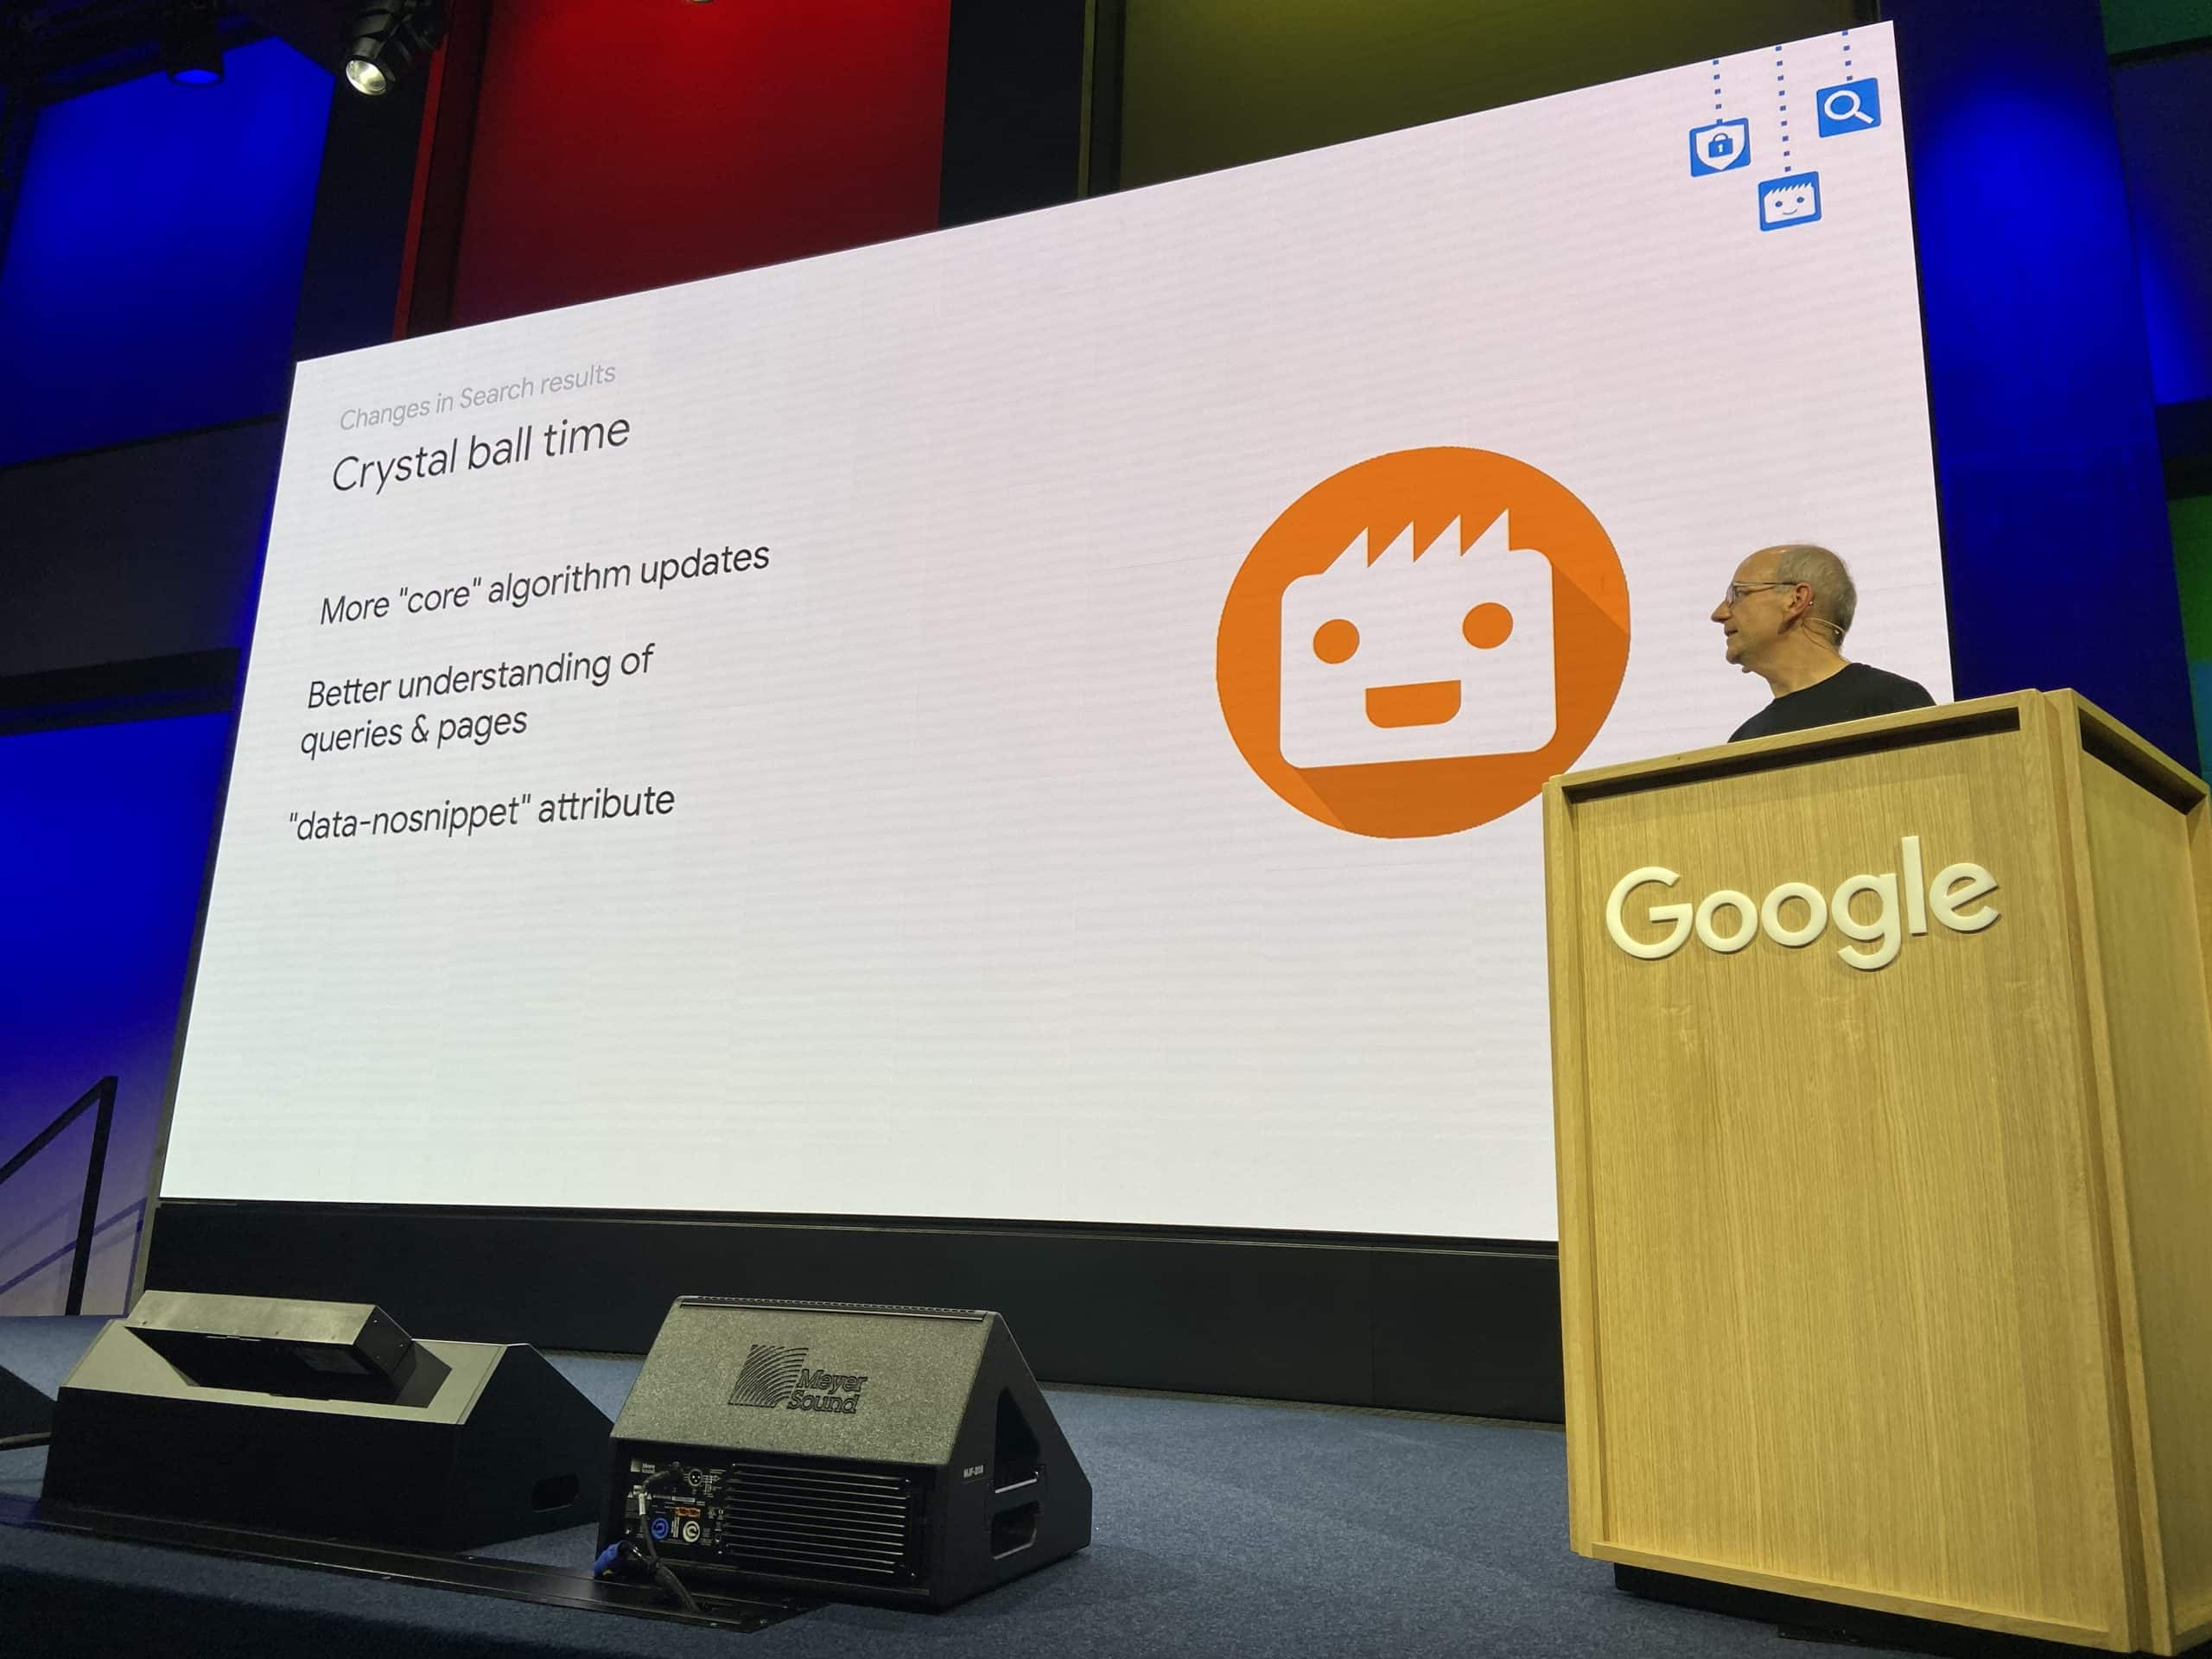 Google predictions from John Mueller for 2020